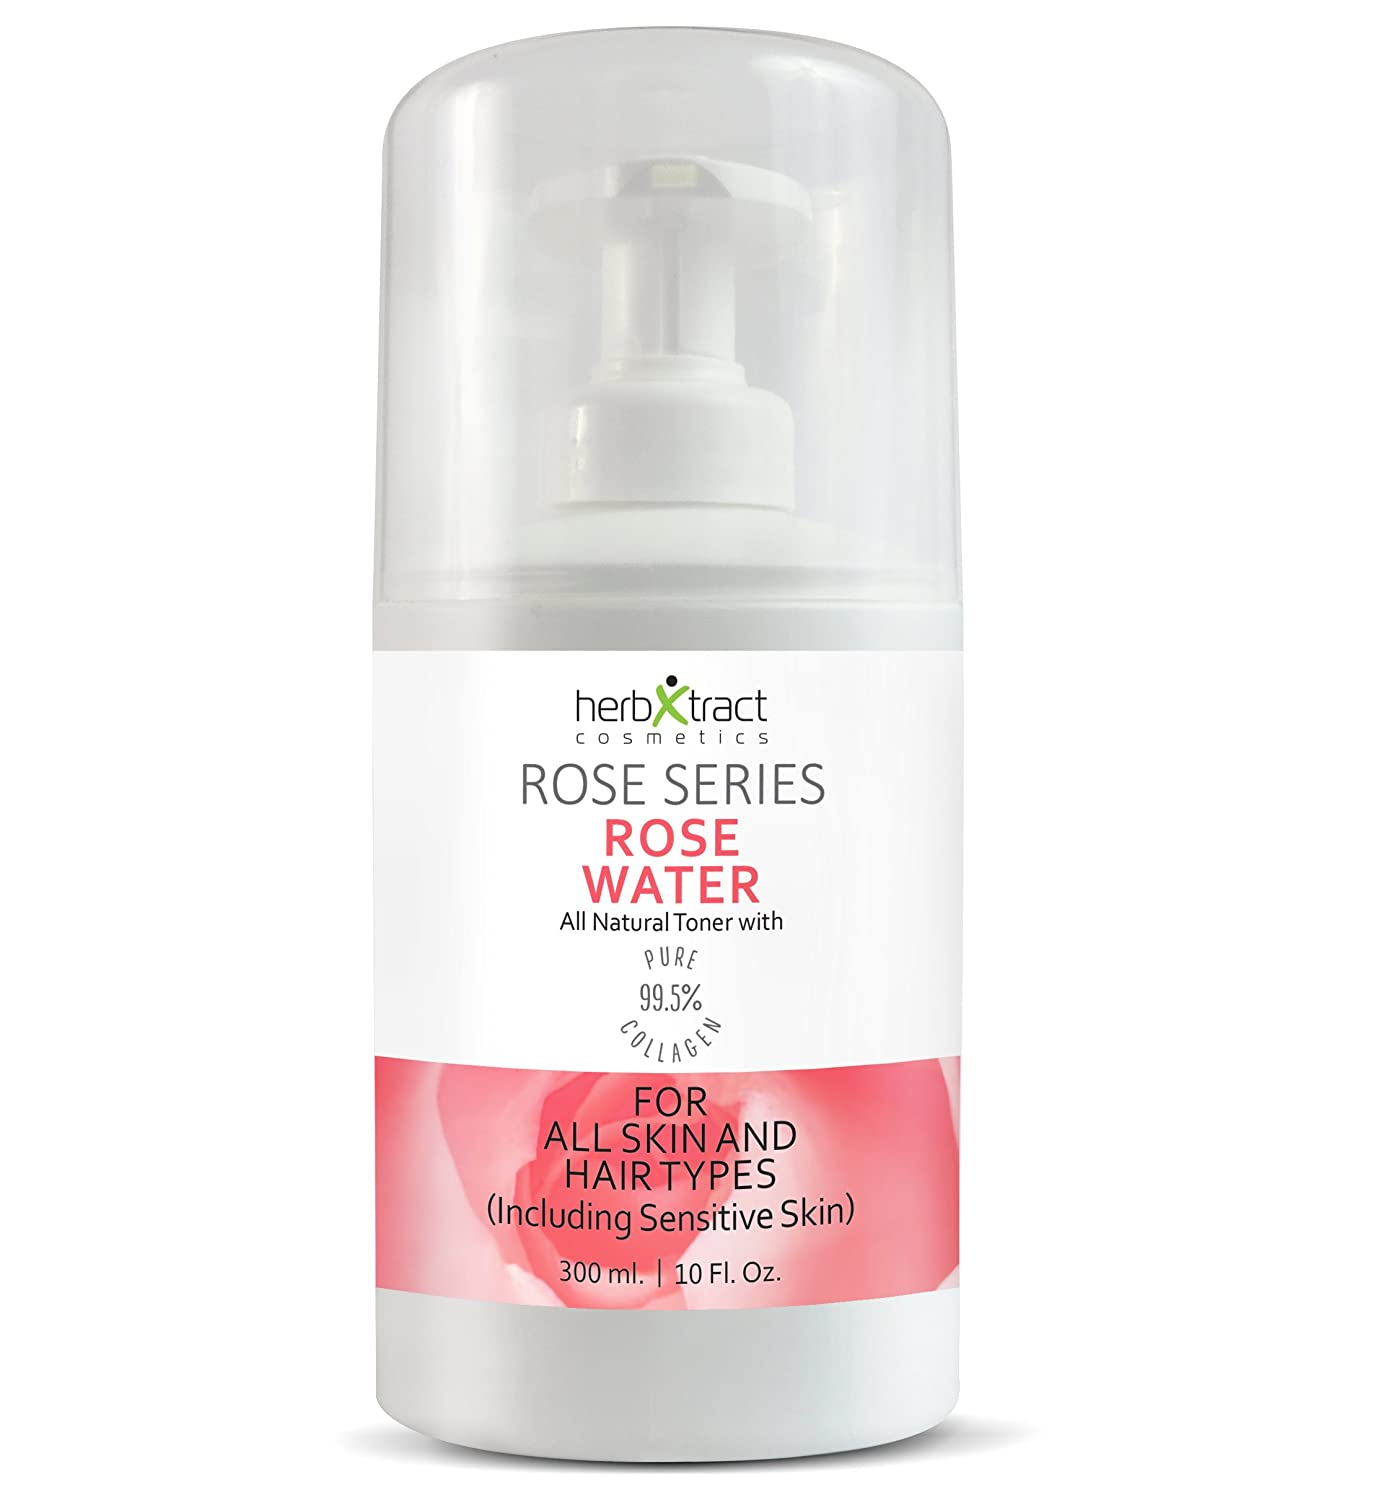 Organic Rose Water Toner with Collagen - 100% Pure Natural Bulgarian Rosewater and Face Moisturizer No Additives - 10 Fluid Ounces Bottle with a Pump by HerbXtract